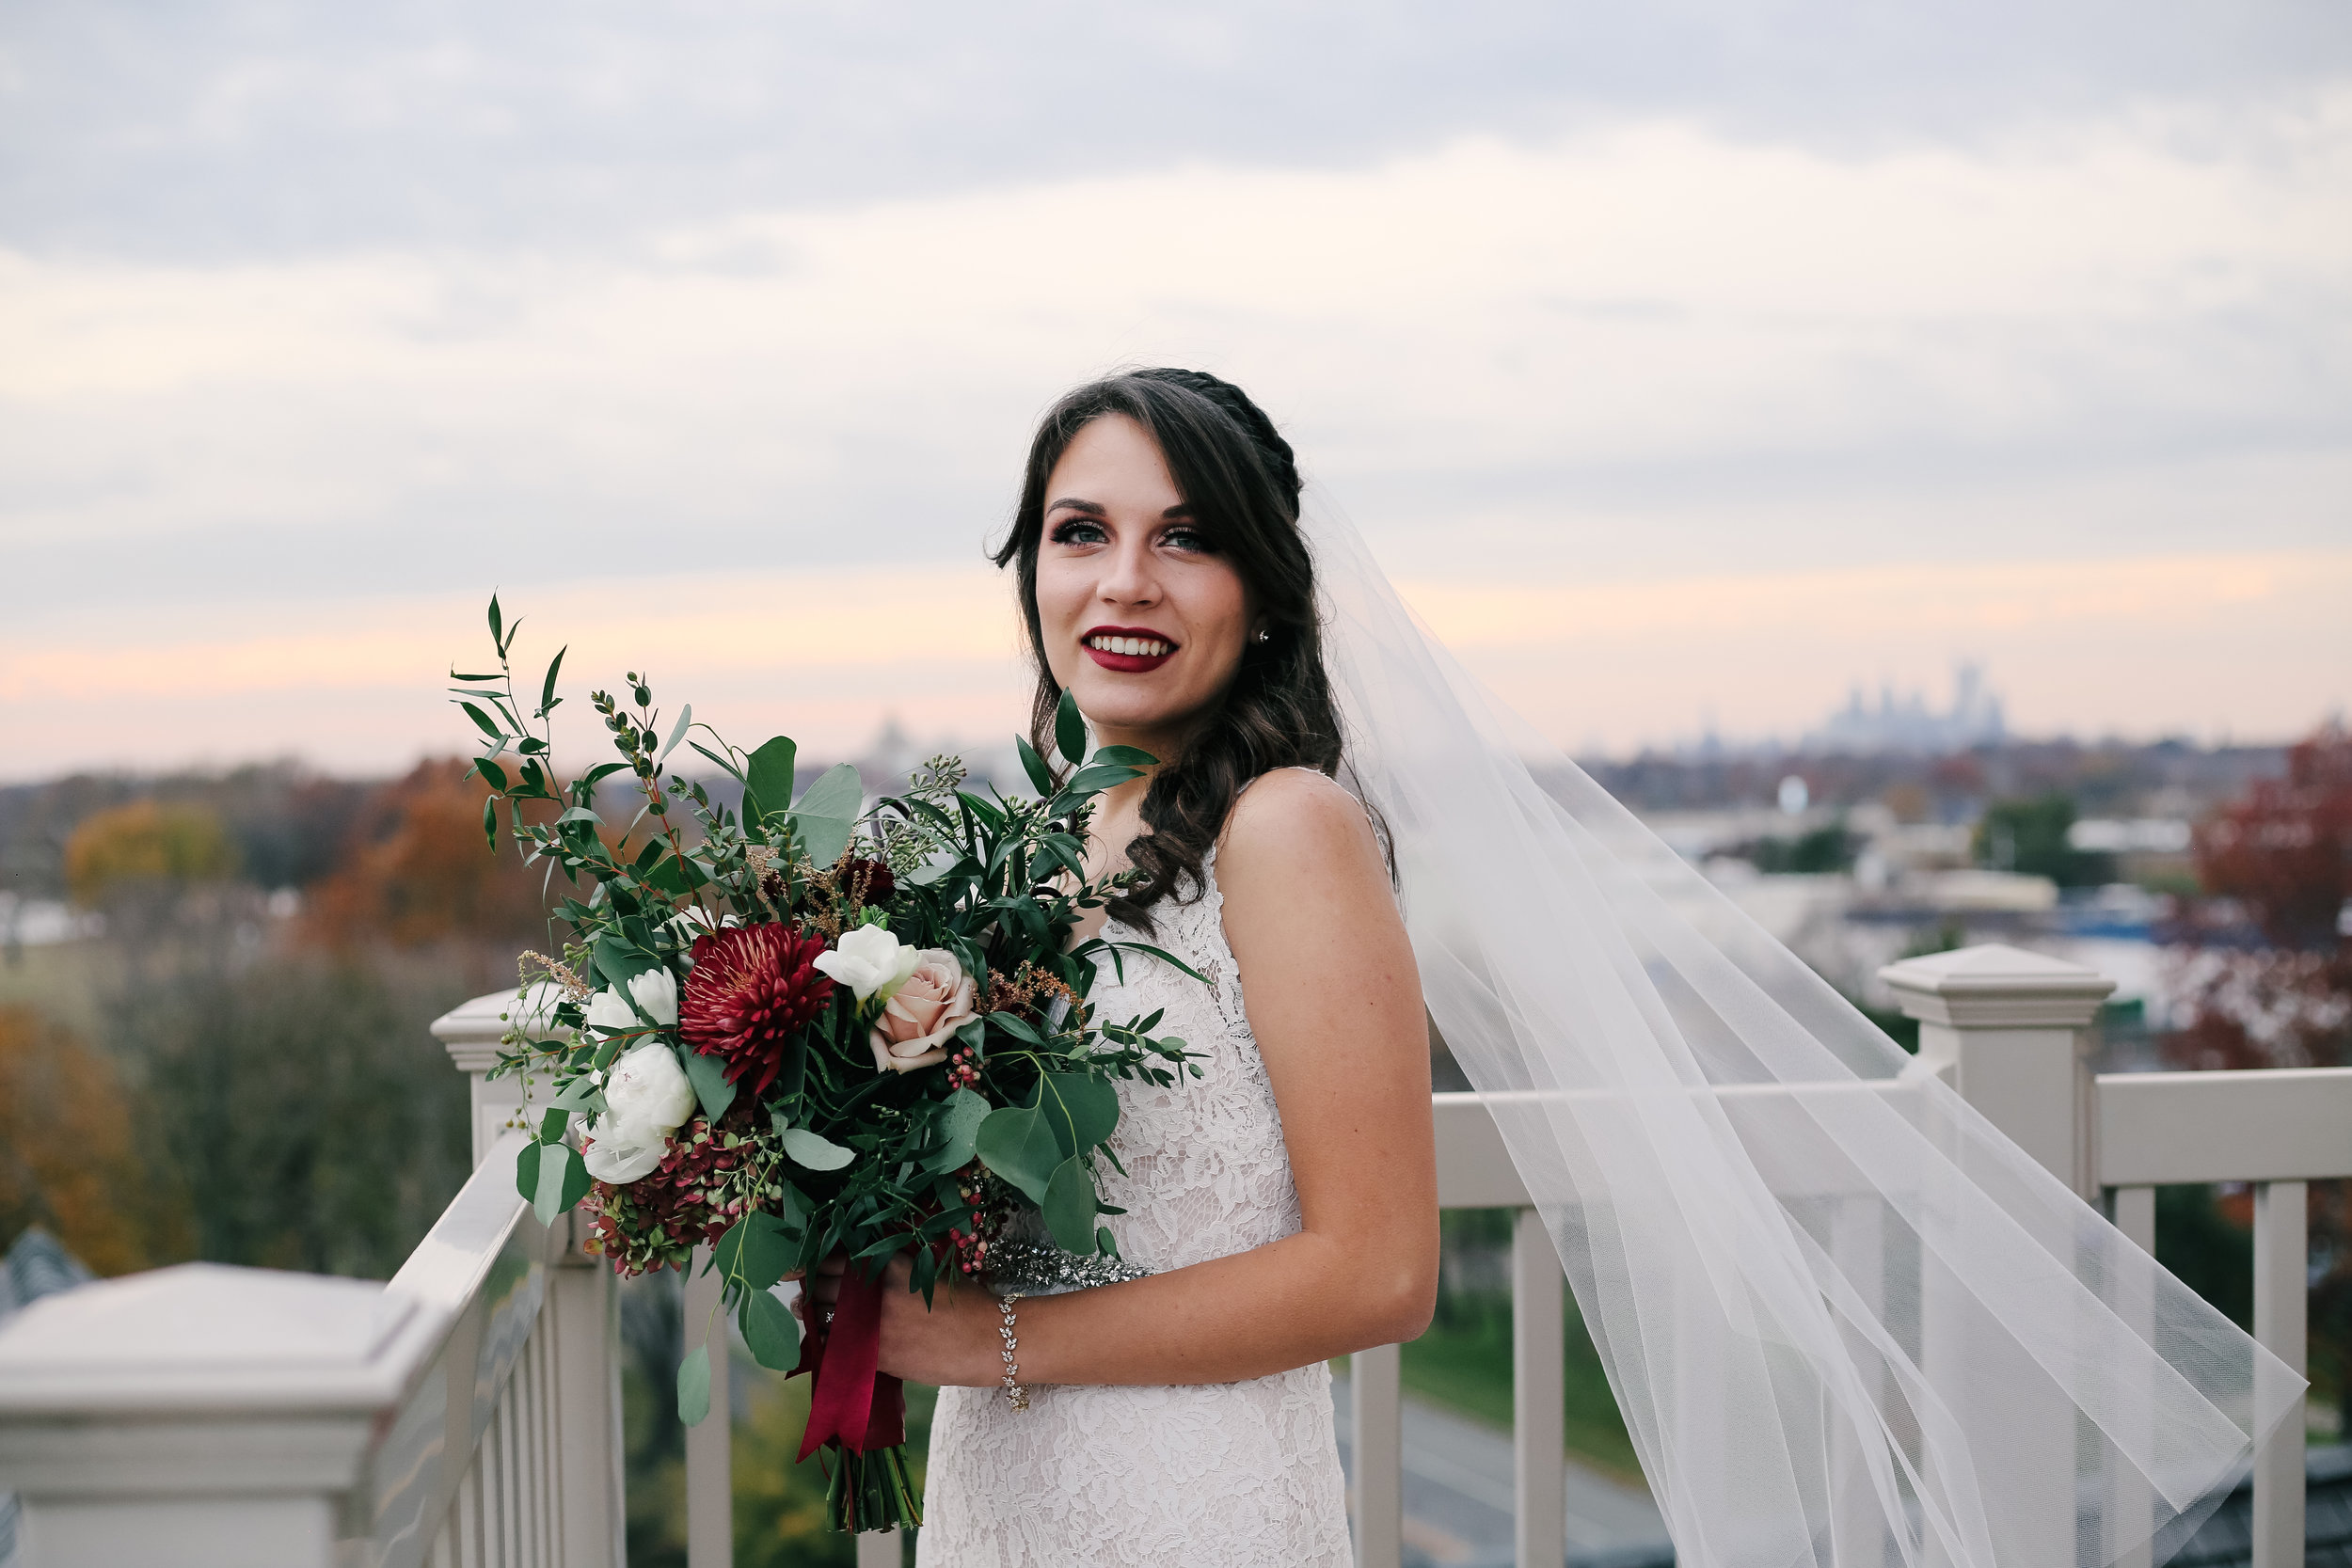 caitlin-elliott-new-jersey-wedding-photographer-portrait-suzanne04